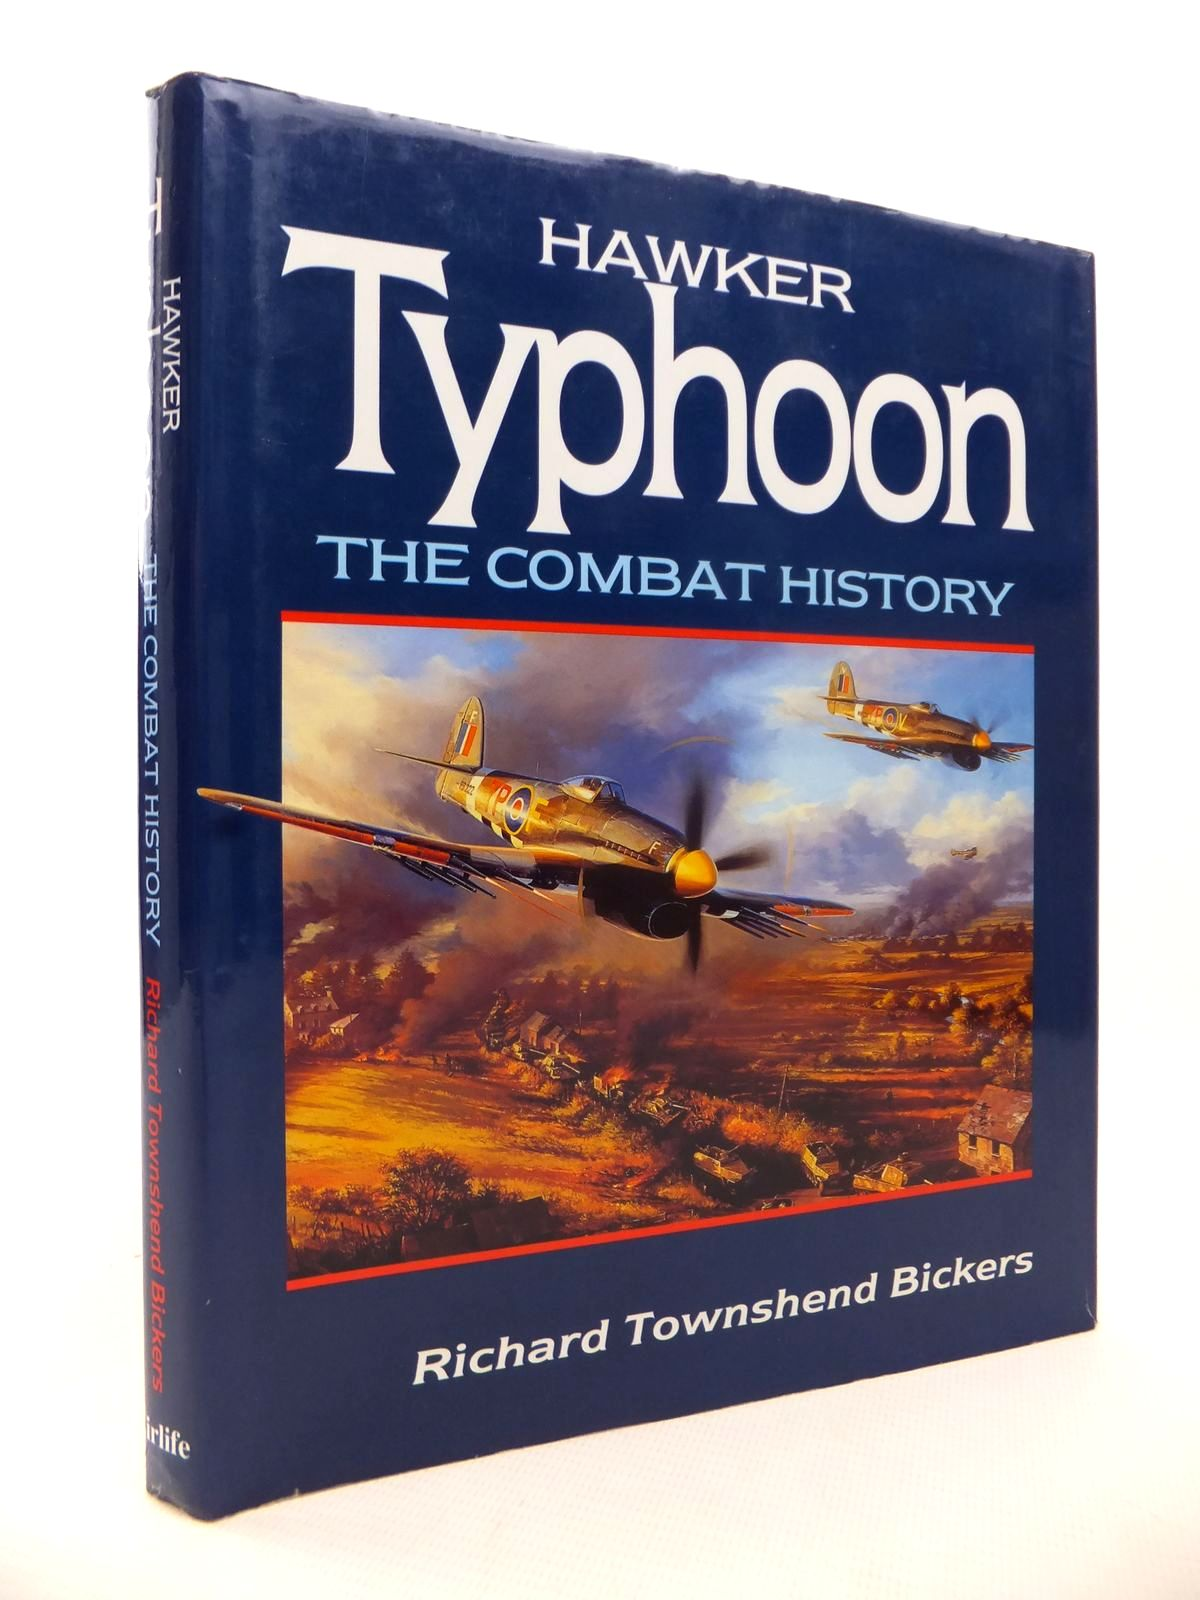 Photo of HAWKER TYPHOON THE COMBAT HISTORY written by Bickers, Richard Townshend published by Airlife (STOCK CODE: 1813434)  for sale by Stella & Rose's Books